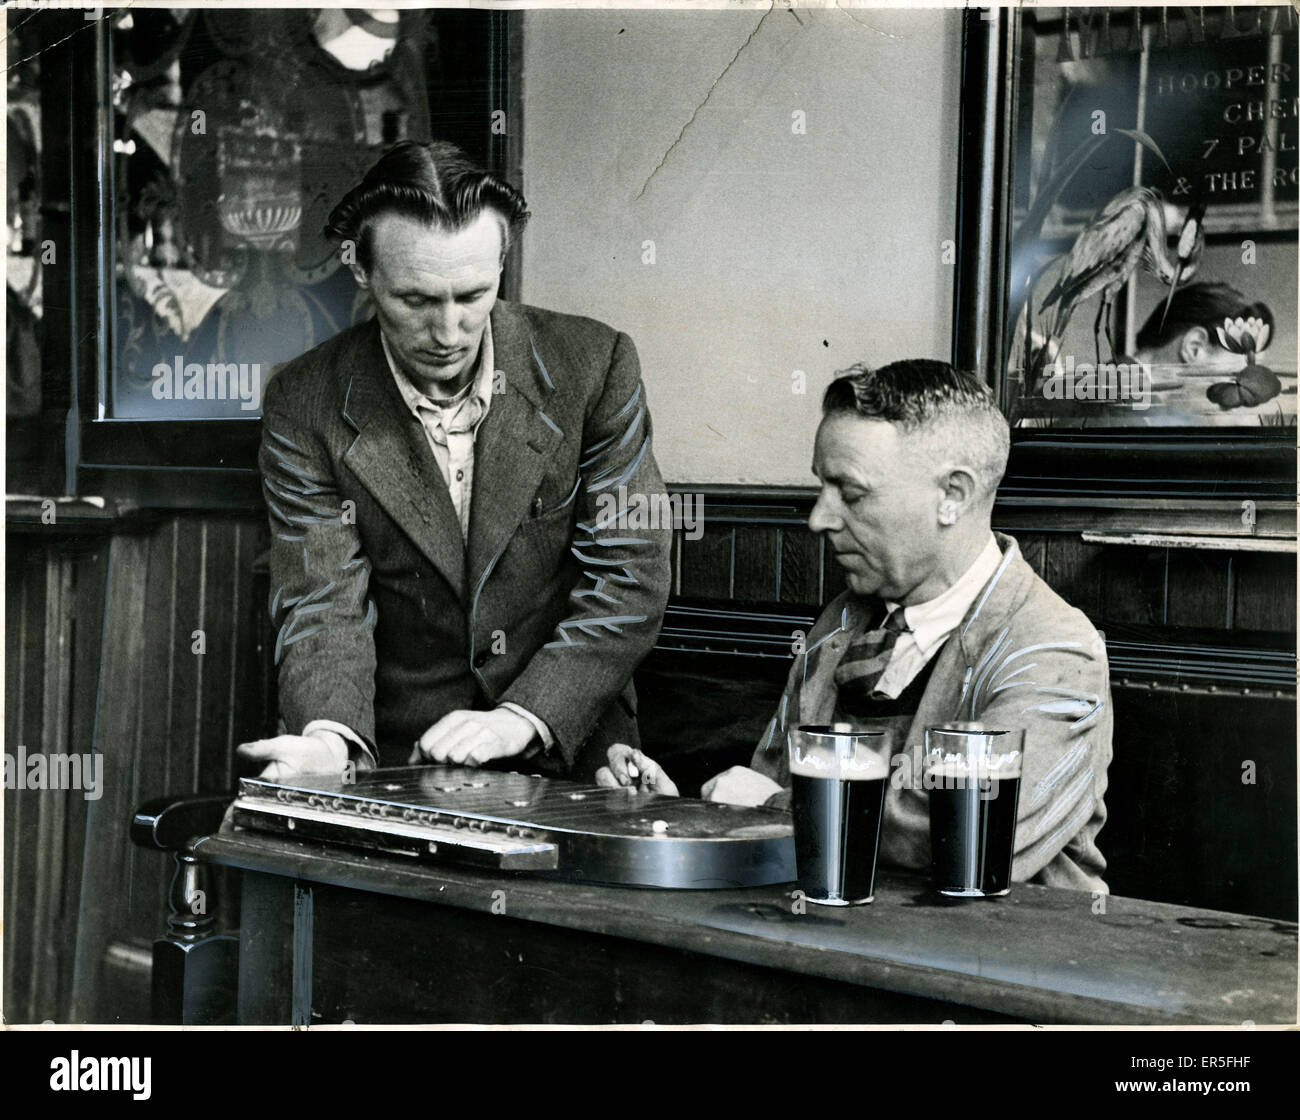 Bar Games - Black Dog Public House, Shoe Lane, Fleet Street, County of London, England.  1949 - Stock Image